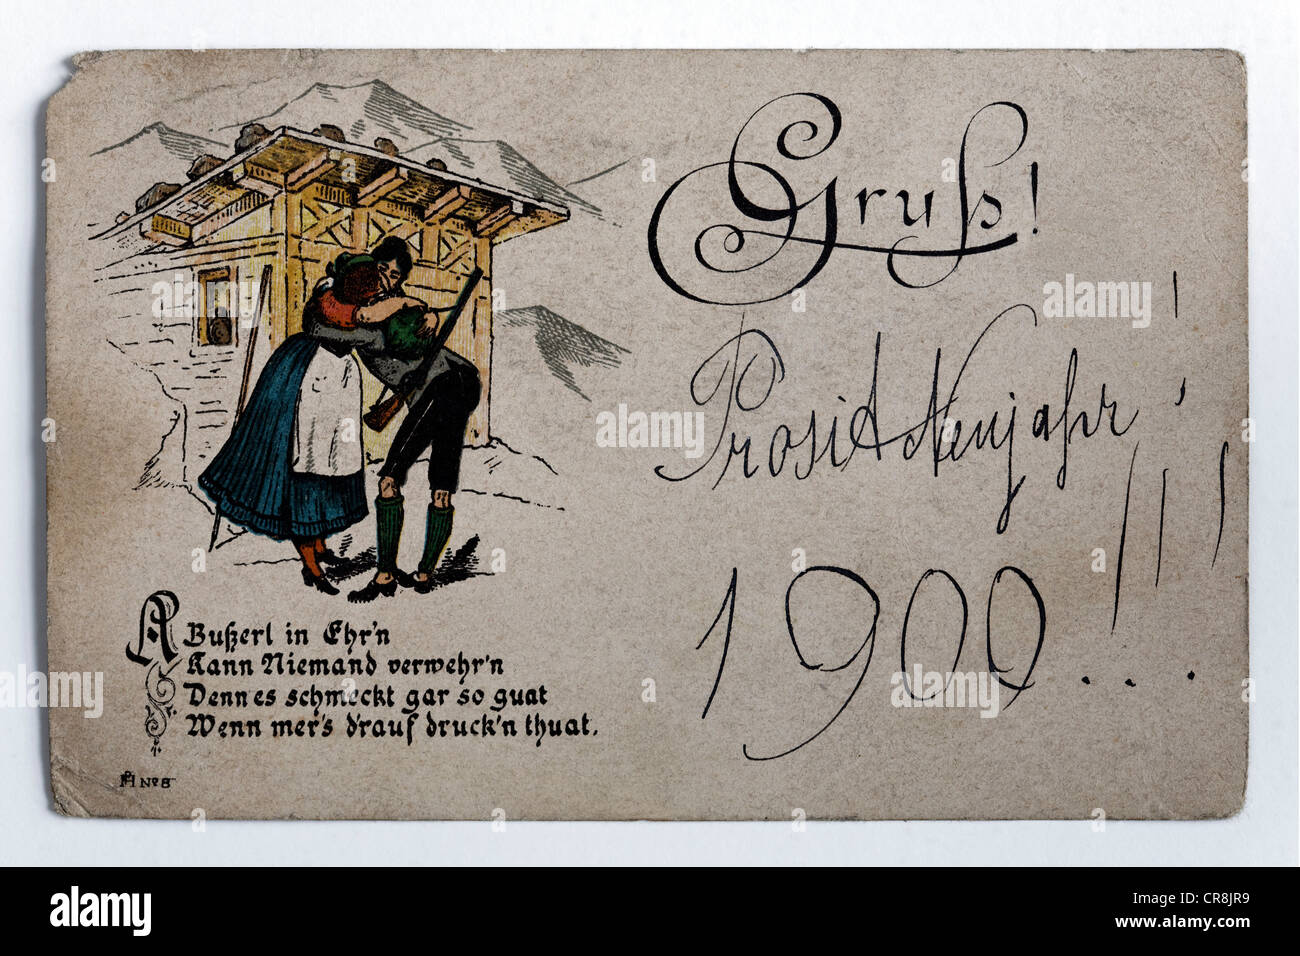 Happy New Year 1900, historic postcard of a kissing couple in front of an alm hut with slogan, Austria - Stock Image